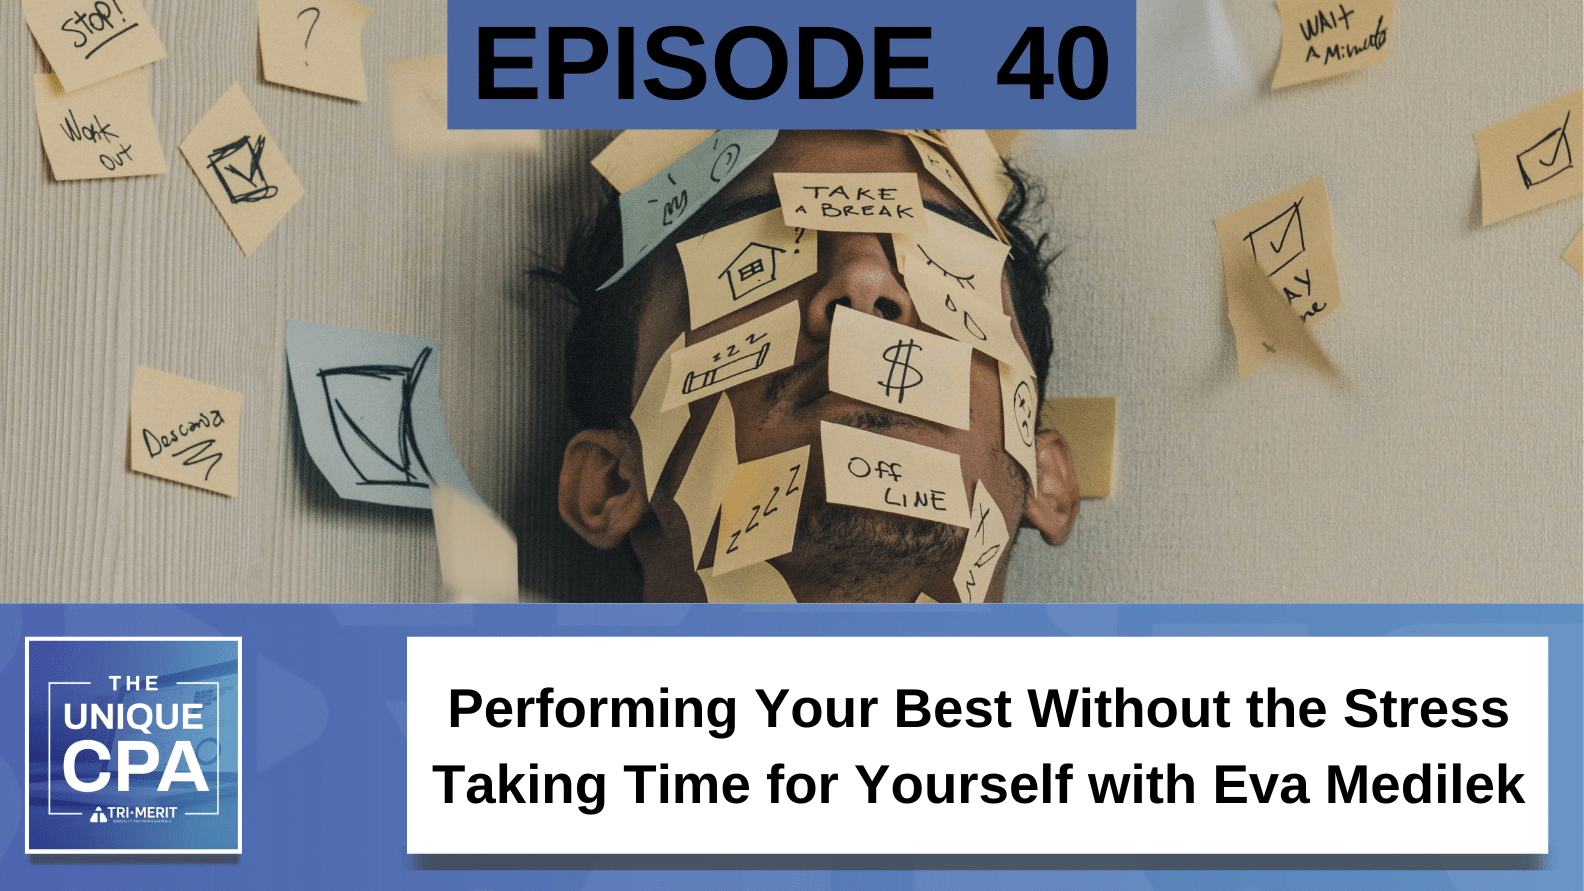 Unique CPA Featured Image Ep 40 Eva Medilek - Performing Your Best Without the Stress - Tri-Merit